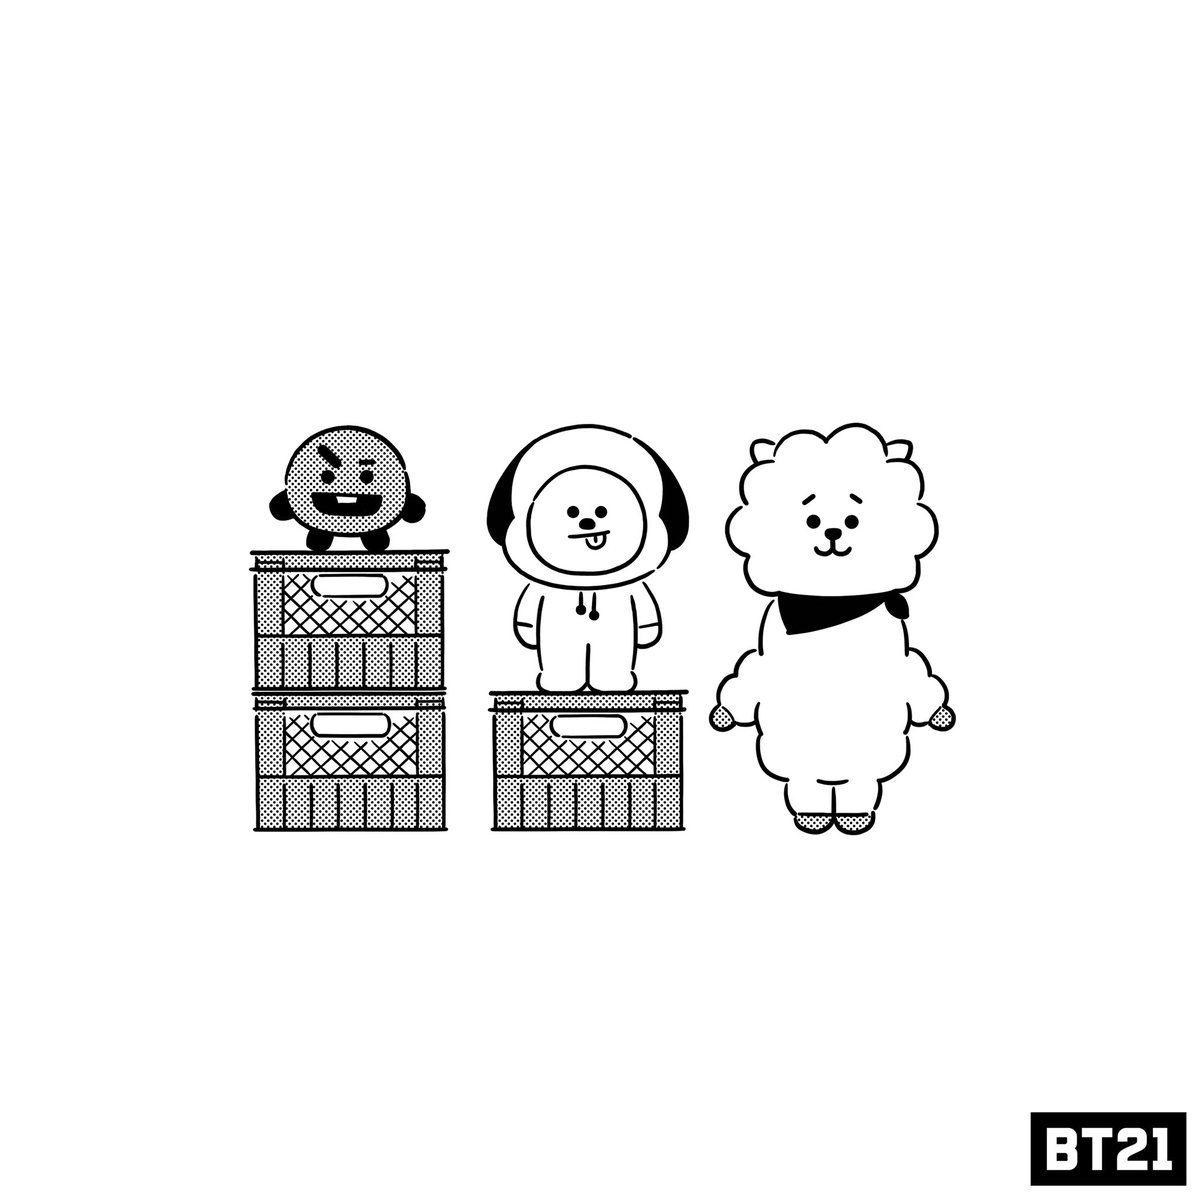 Bt21 Tren Twitter Who S The Tallest Coloring Books Coloring Pages Cute Coloring Pages